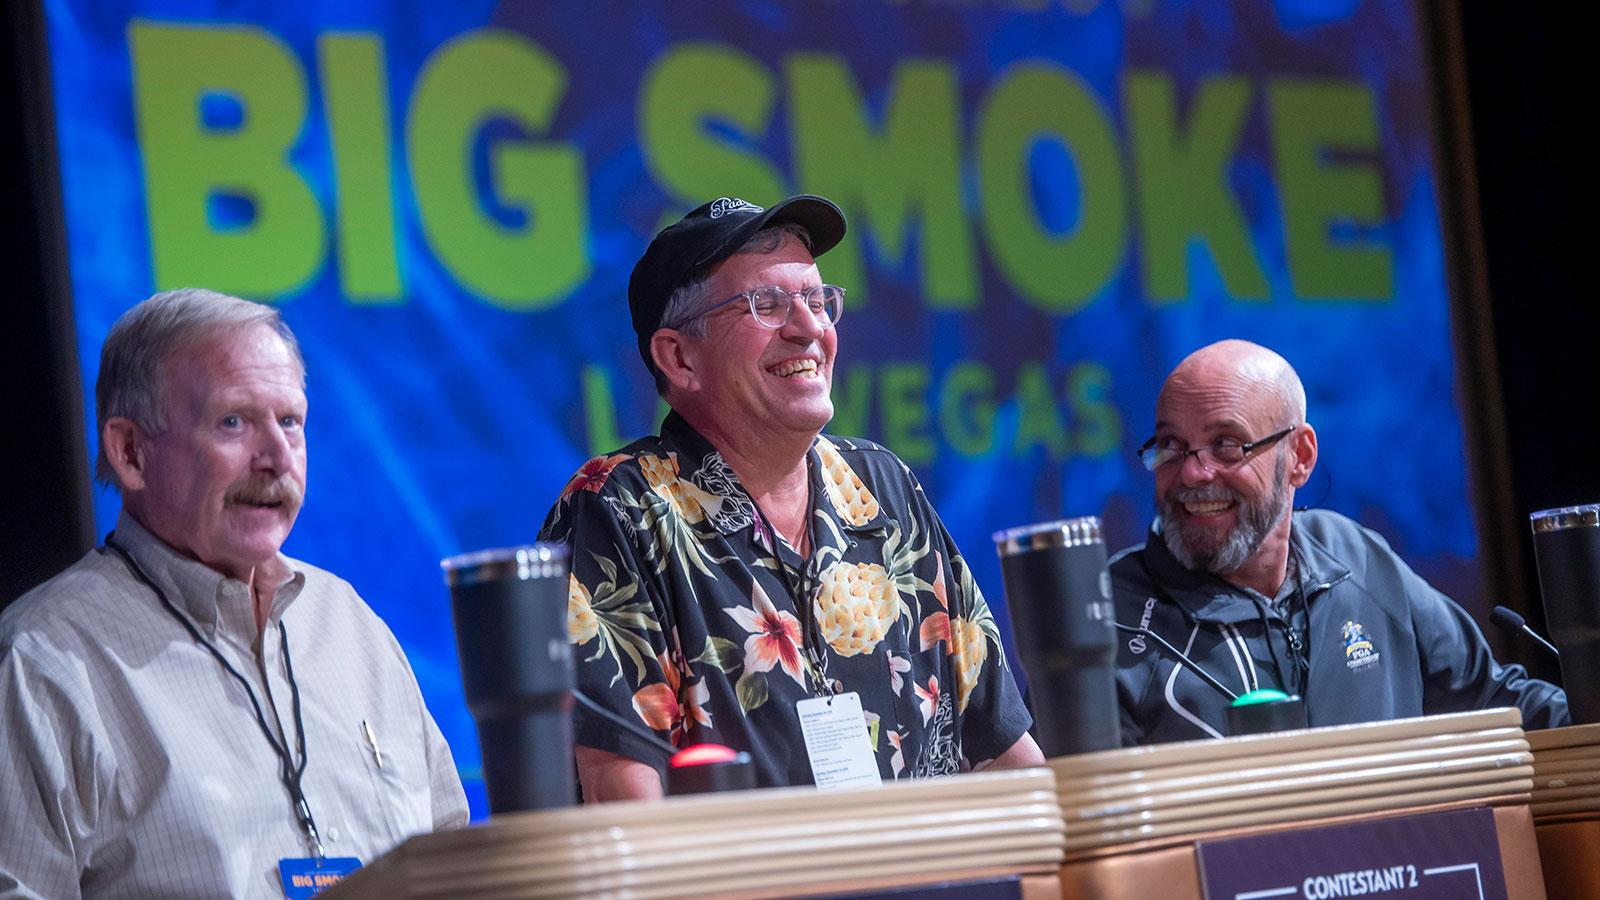 Big Smoke 2019 gameshow contestants